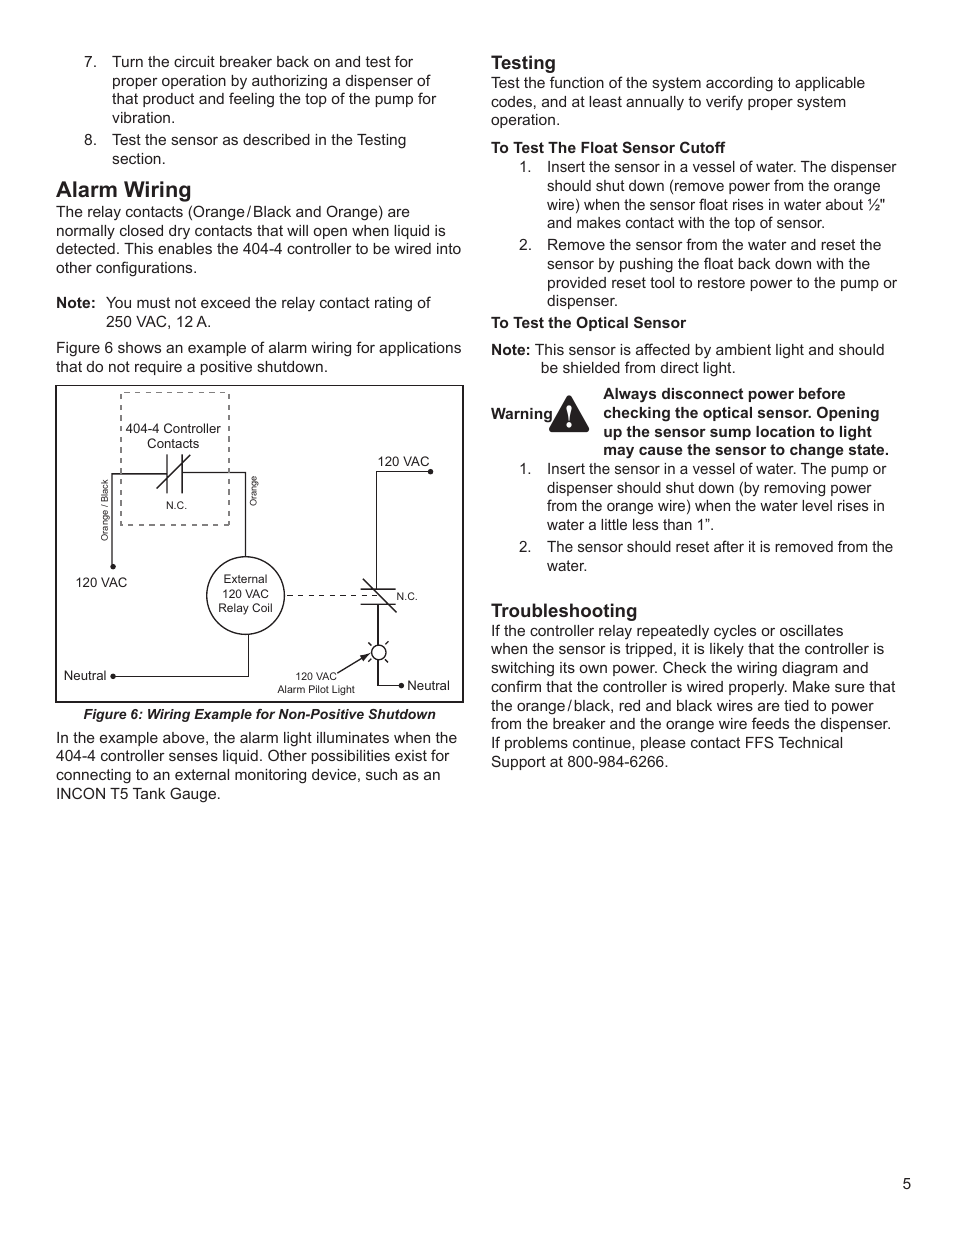 medium resolution of alarm wiring testing troubleshooting franklin fueling systems dc406 dispensing cutoff system user manual page 5 6